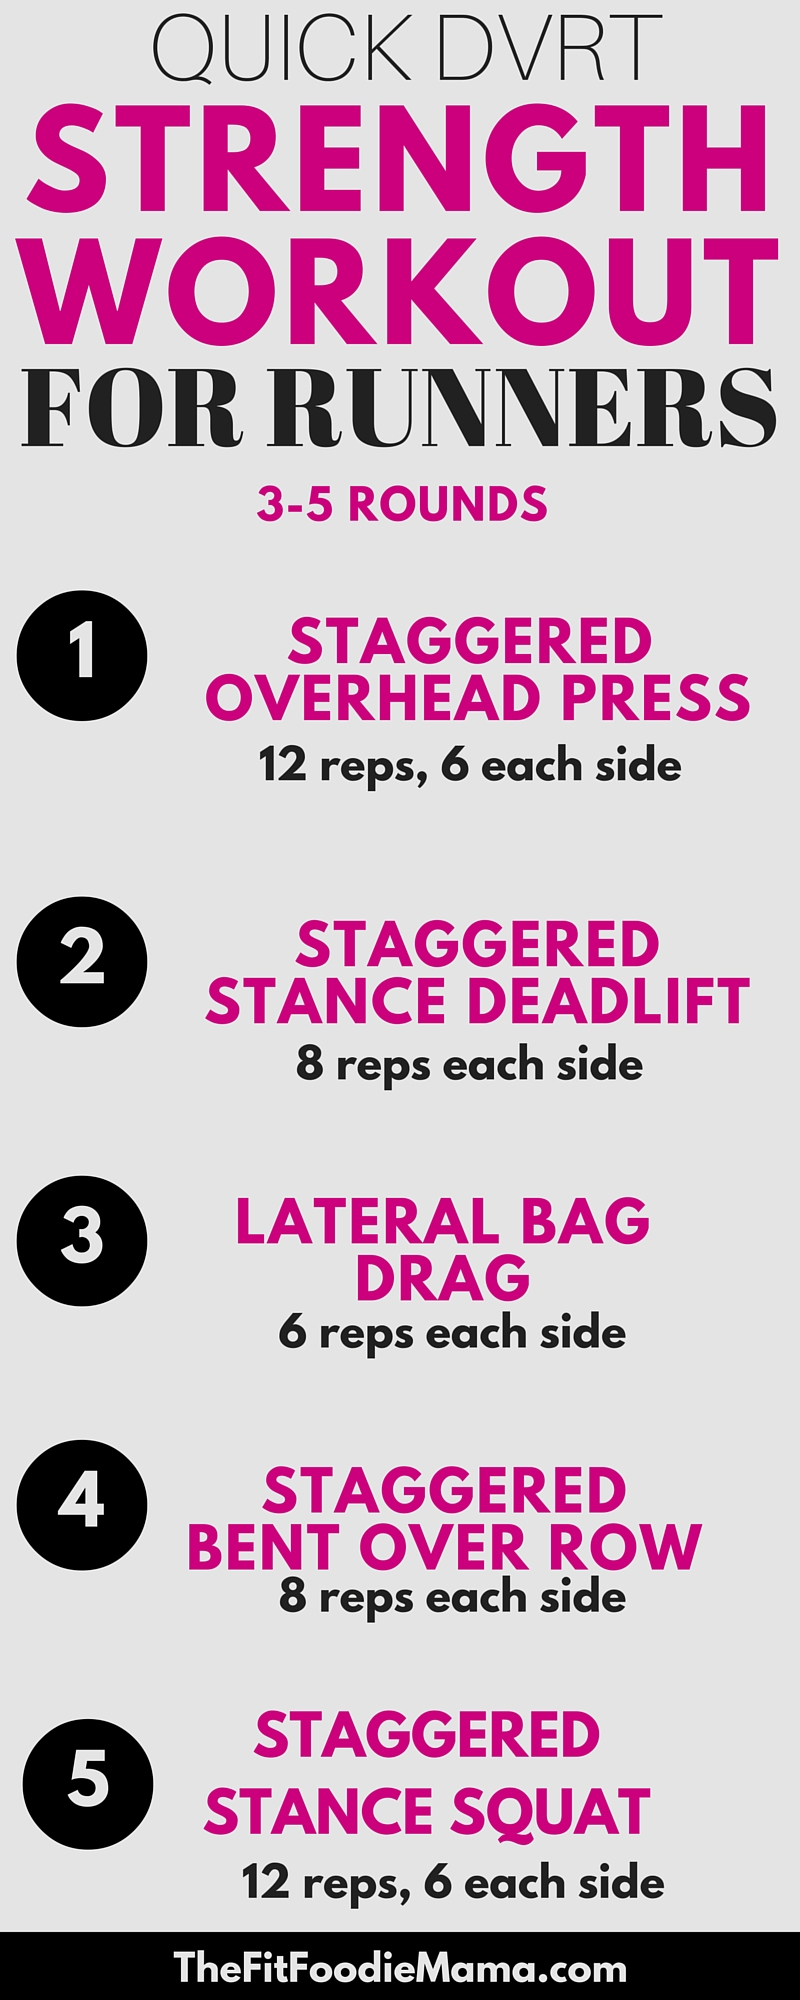 Quick DVRT Ultimate Sandbag Strength Training Workout for Runners {Functional Training, Functional Fitness, Best Running Workout, Cross Training, Wild Workout Wednesday}